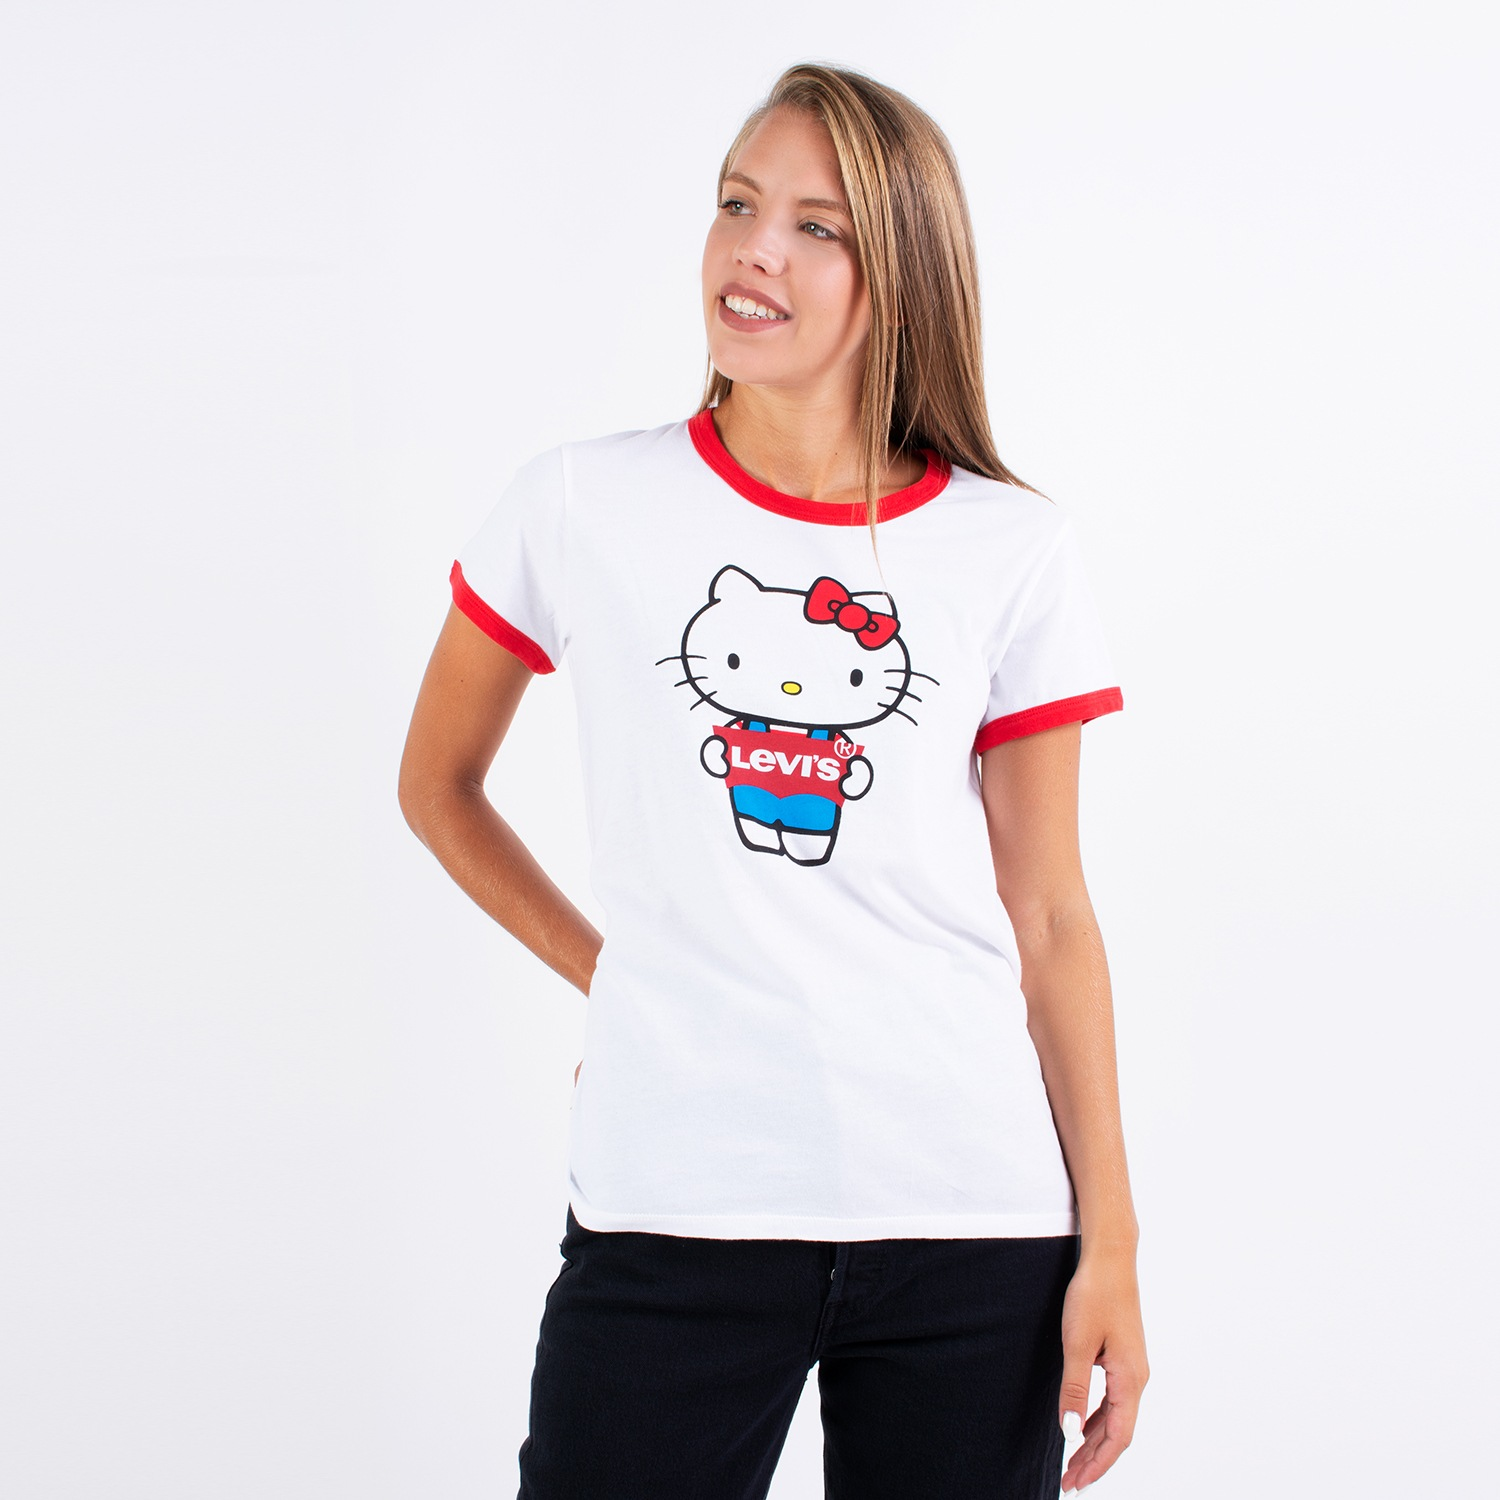 Sneaker10 - Levi's x Hello Kitty Women's T-shirt - Παιδική Μπλούζα